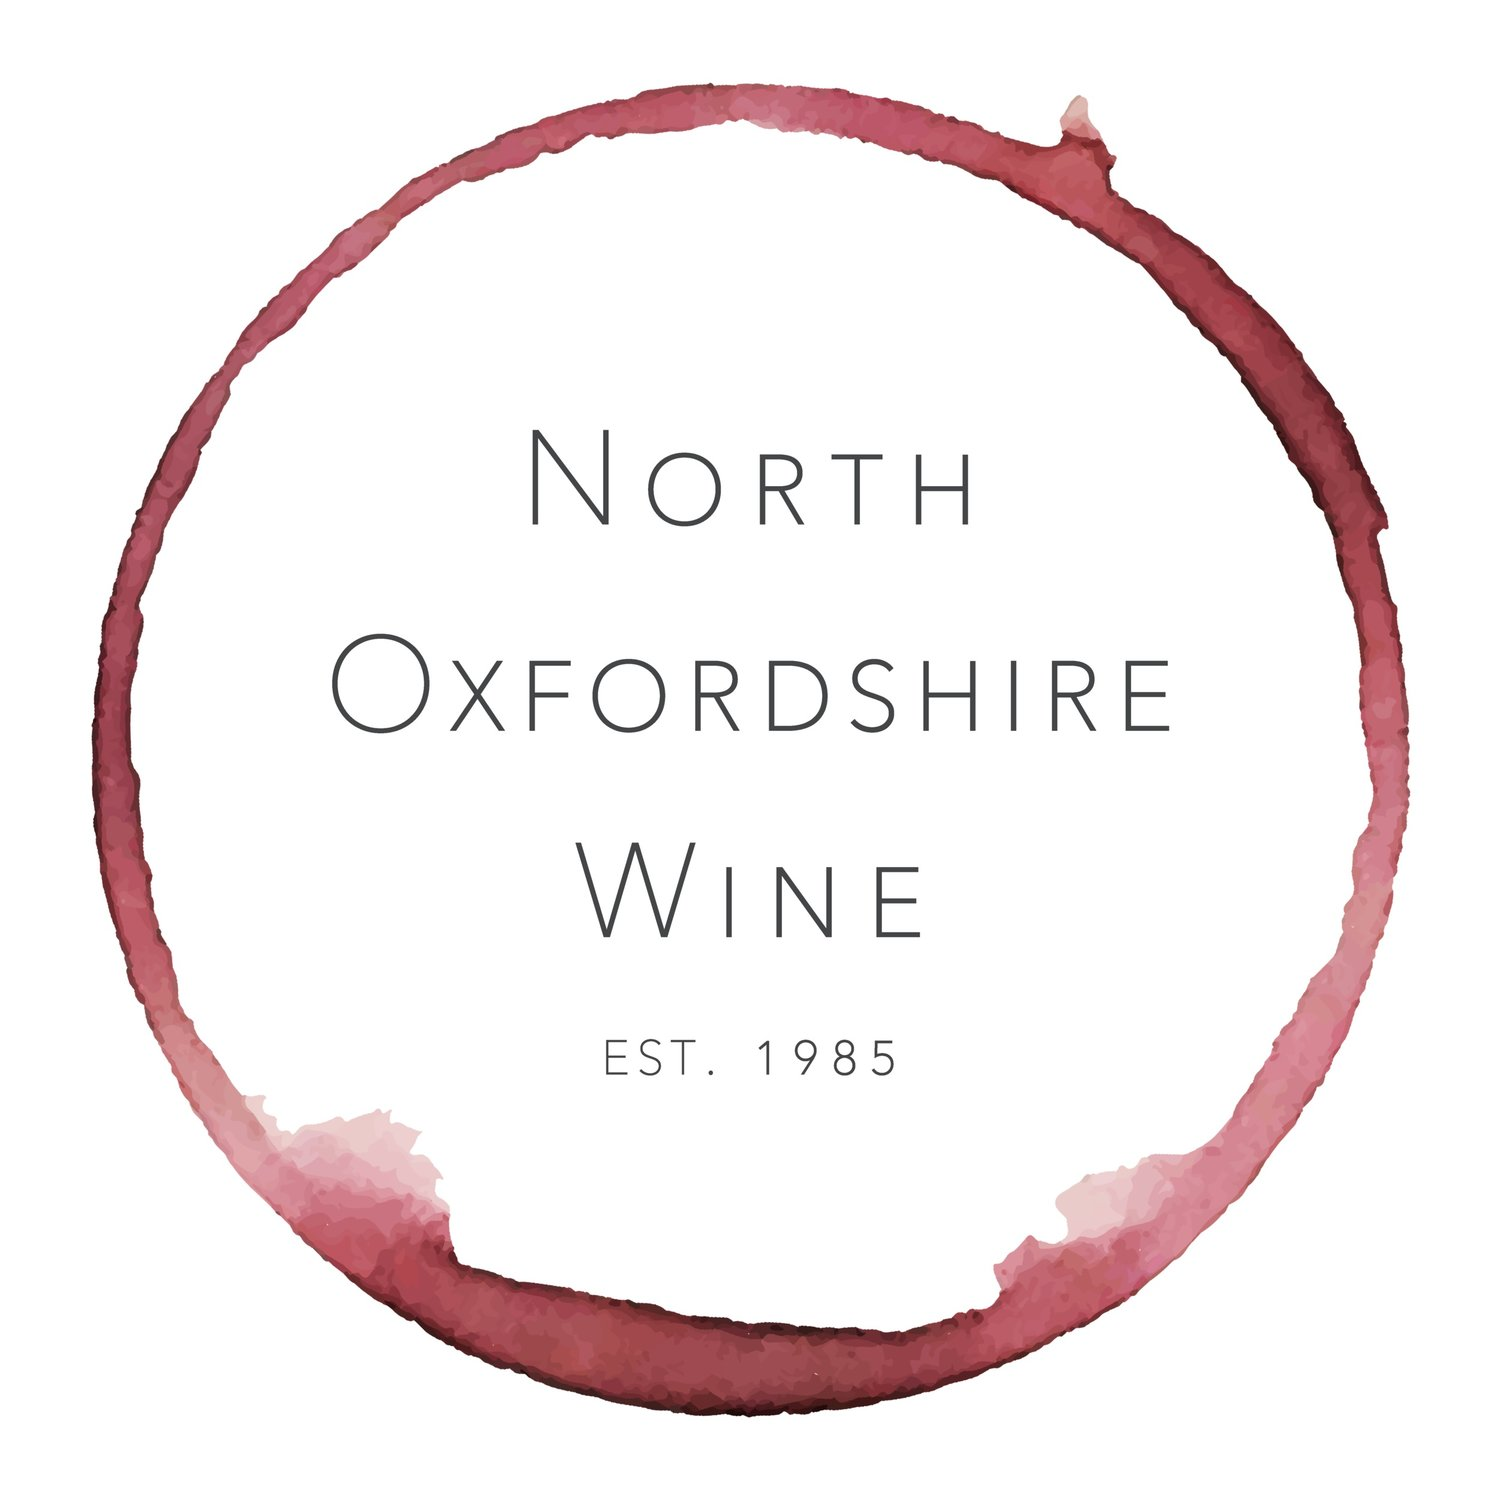 North Oxfordshire Wine